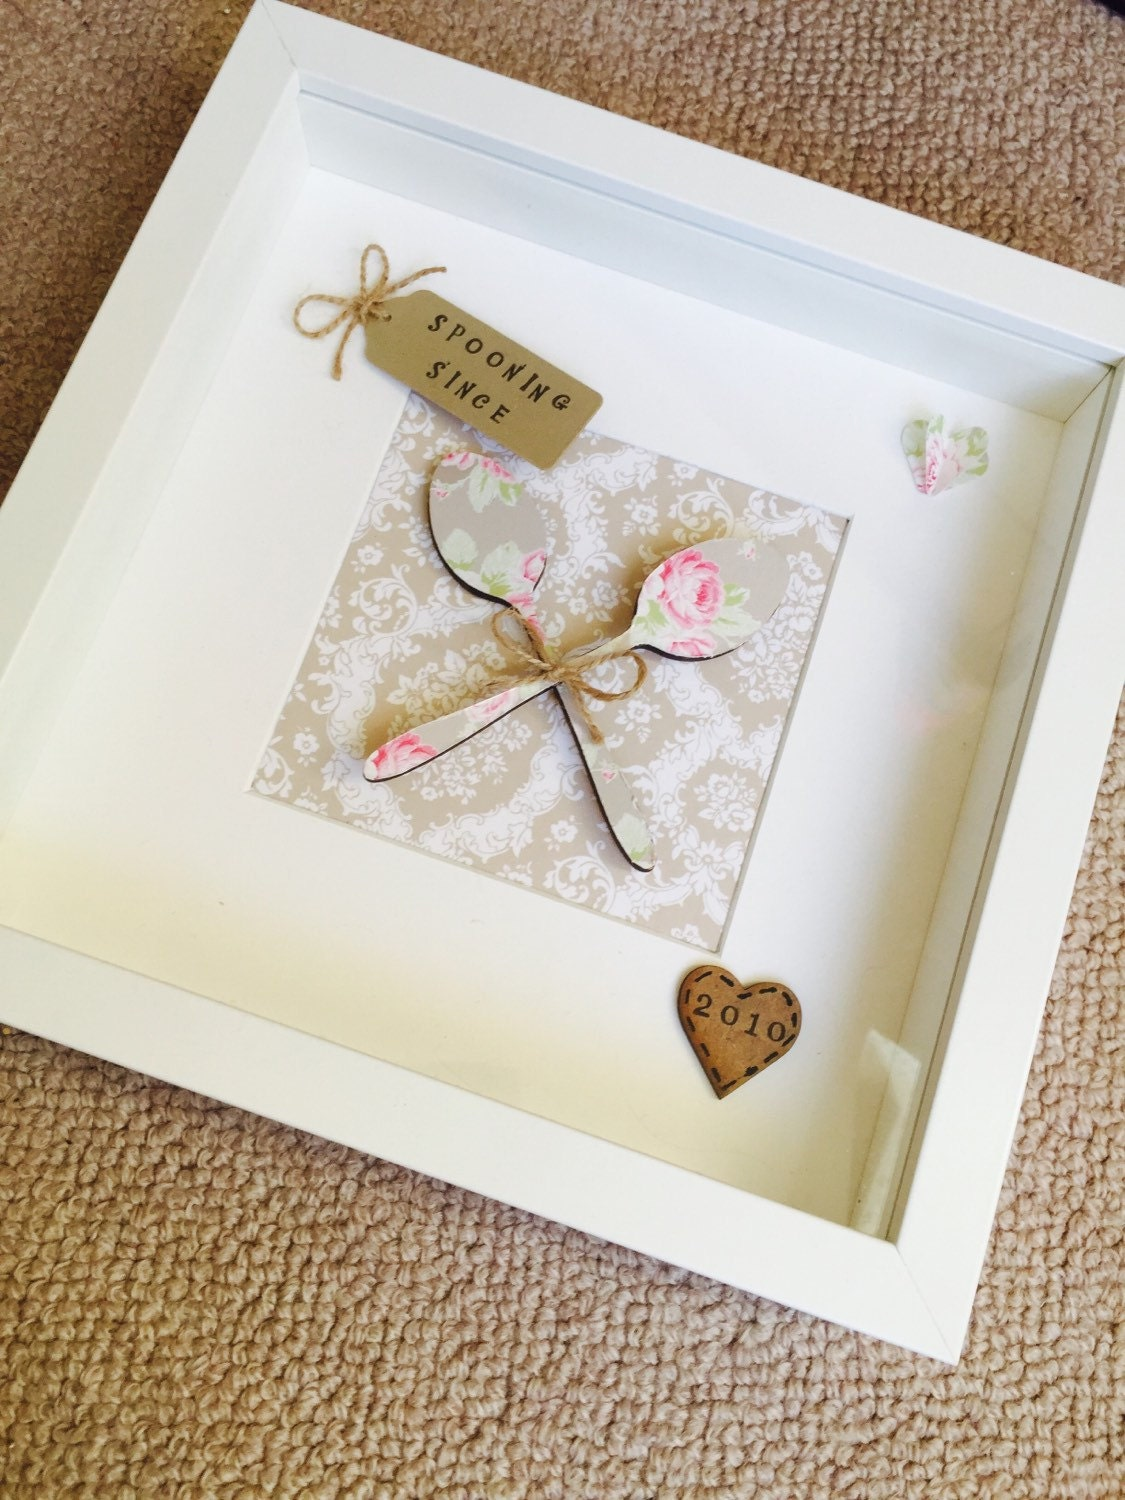 Spooning since frame box frame valentines gift anniversary